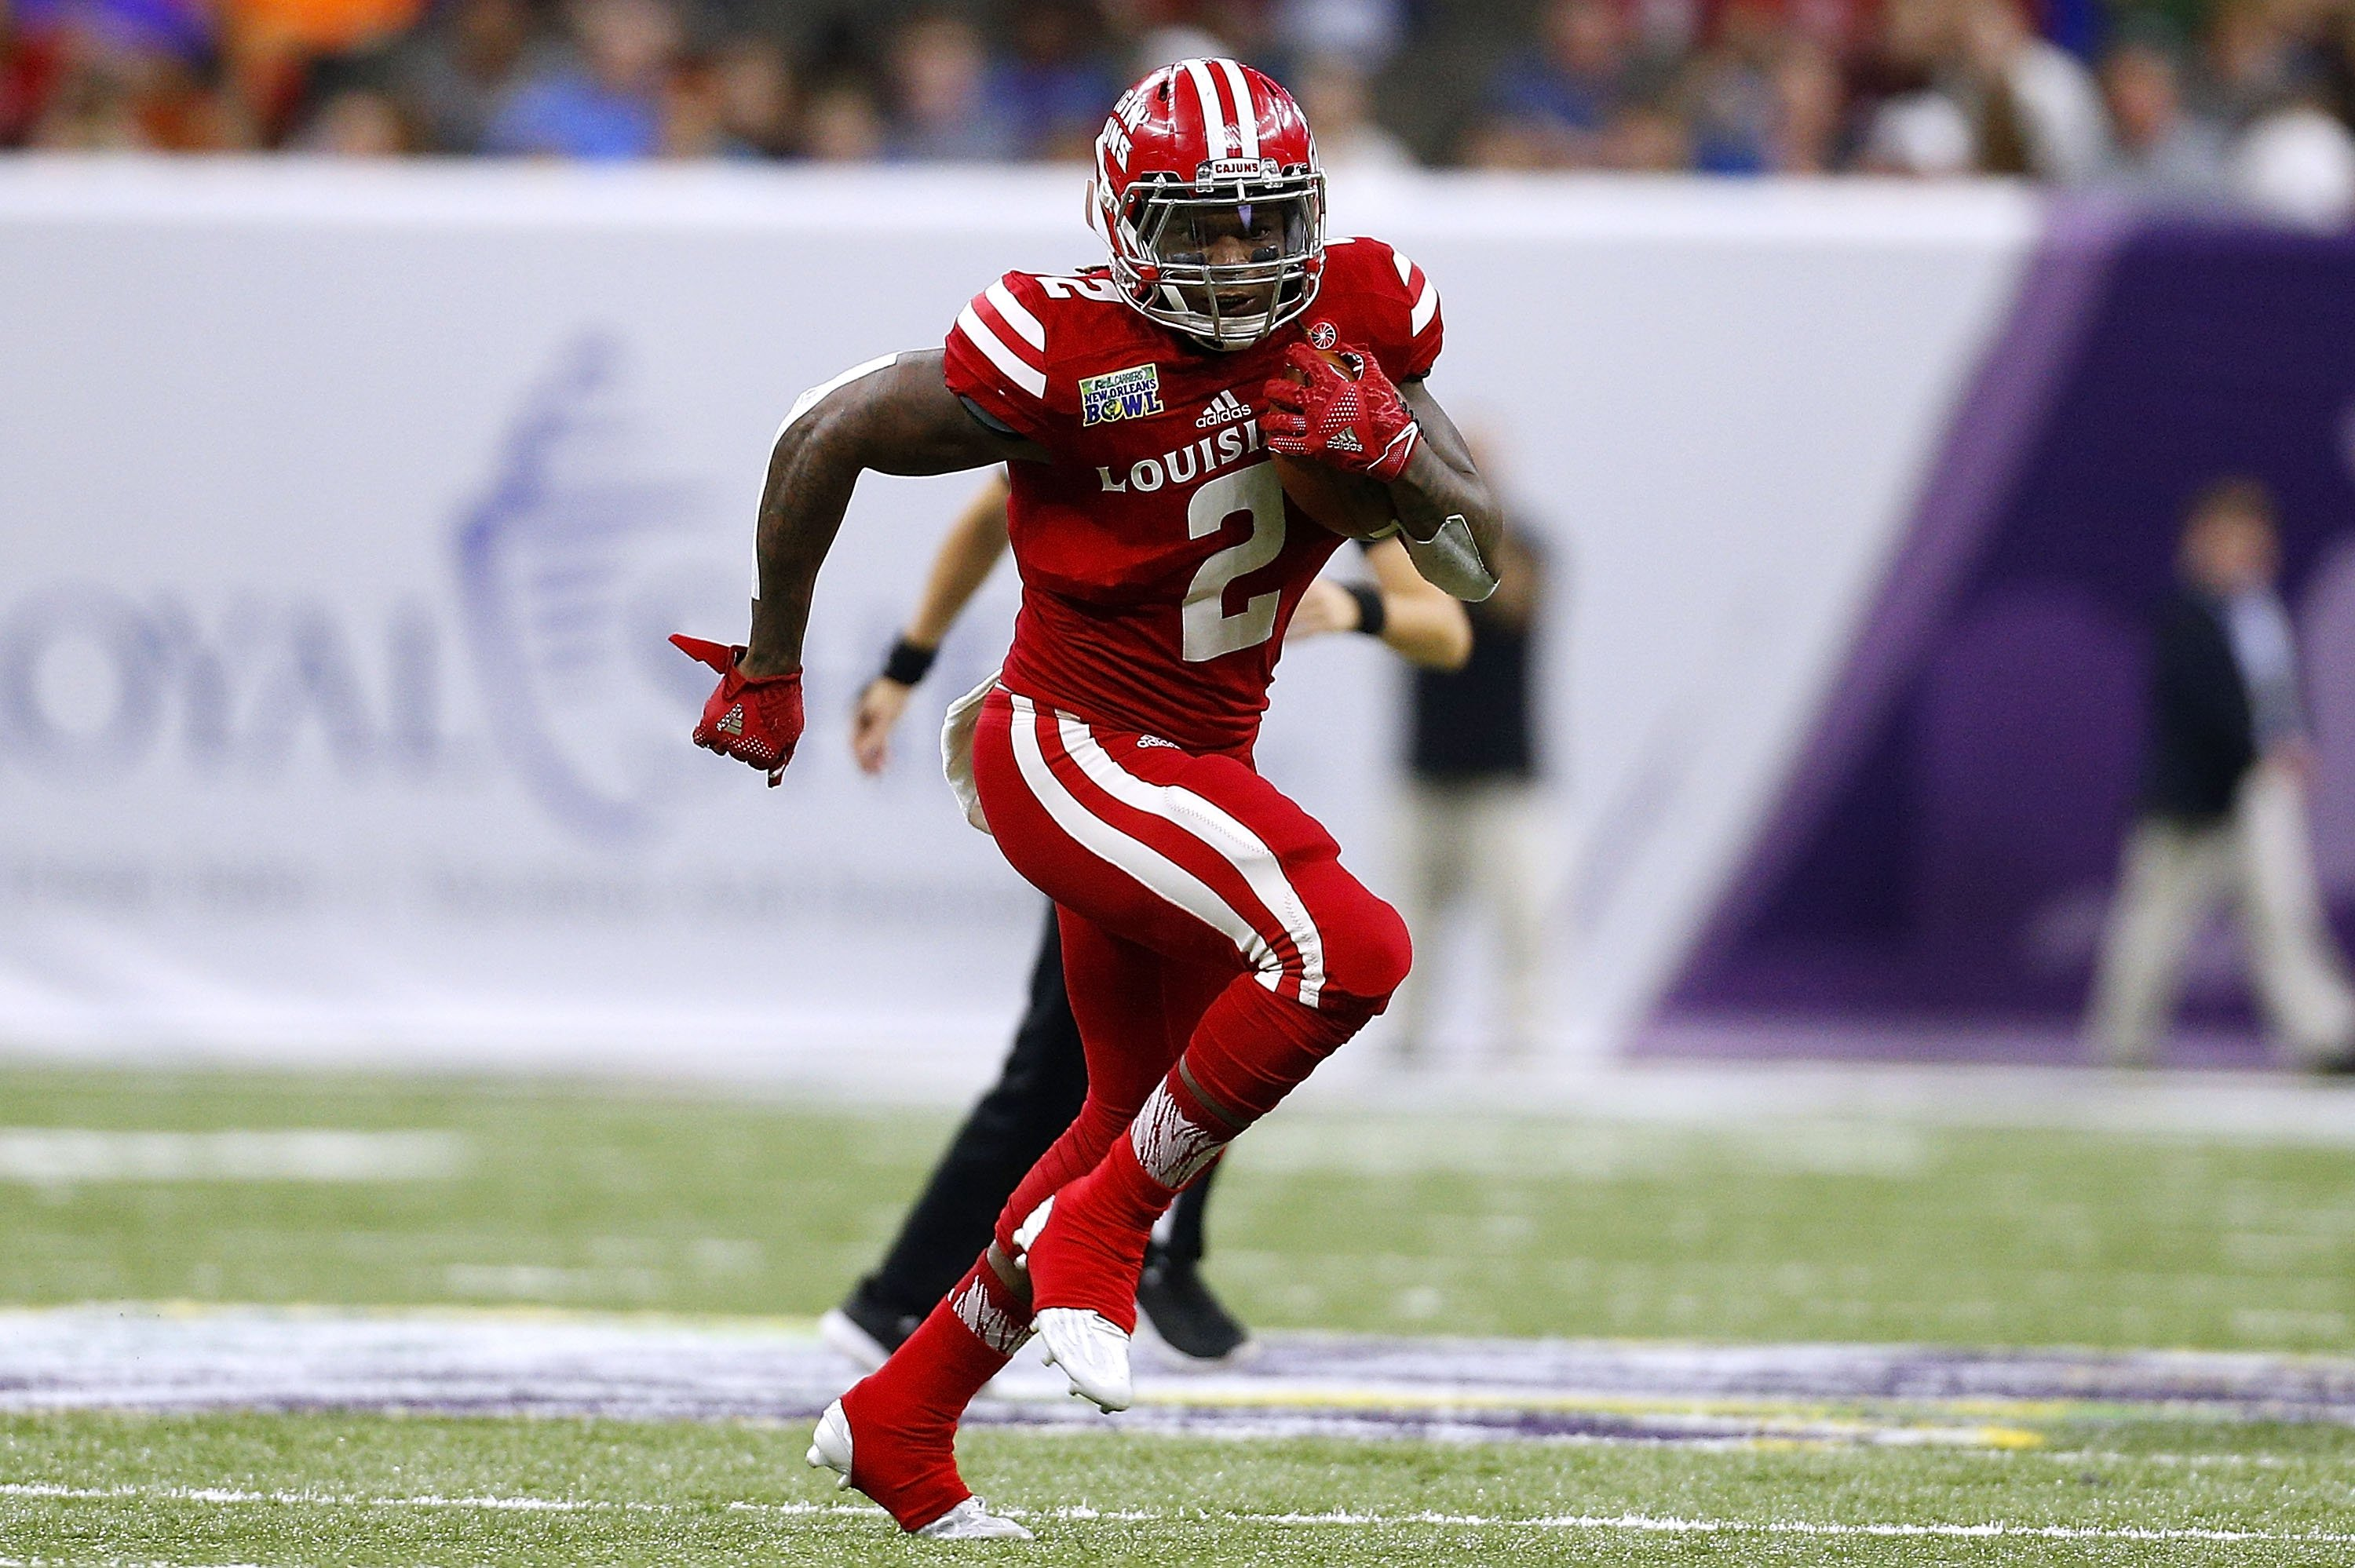 Al Riles #2of the Louisiana-Lafayette Ragin Cajuns at a gameat the Mercedes-Benz Superdome on December 17, 2016, in New Orleans, Louisiana | Photo:Jonathan Bachman/Getty Images